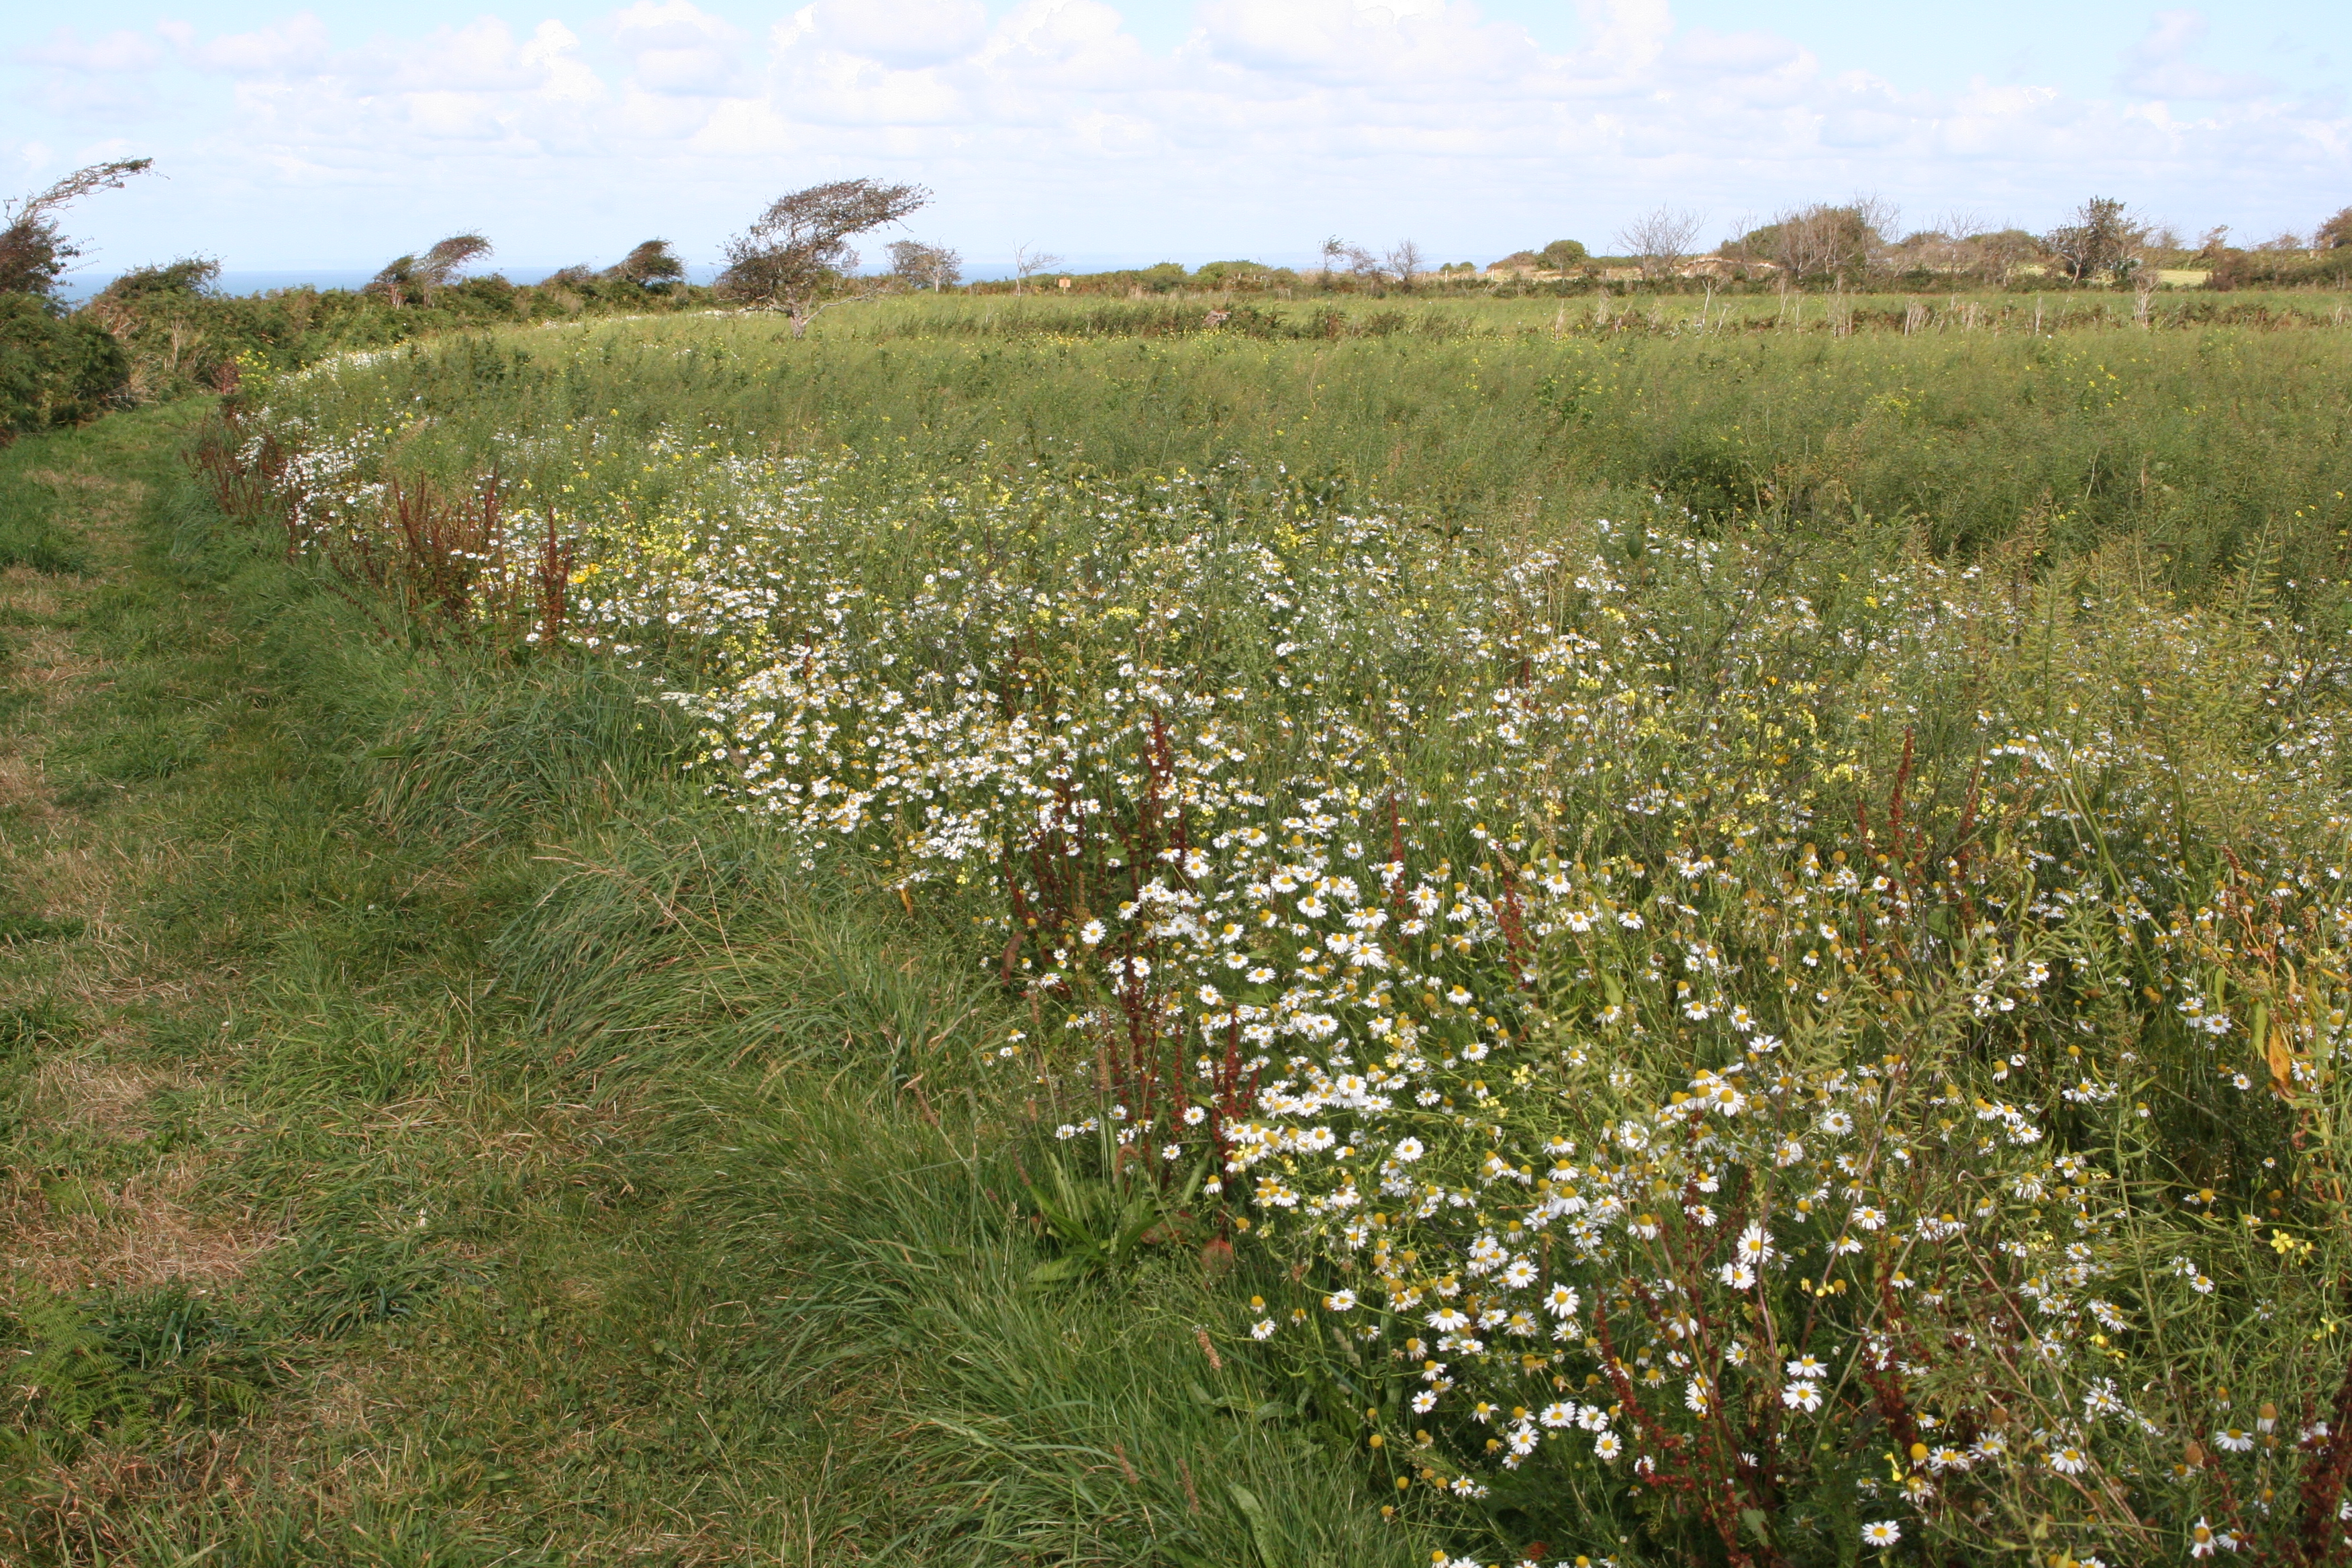 Conservation crop in field on Jersey's north coast. Photo by Cris Sellares